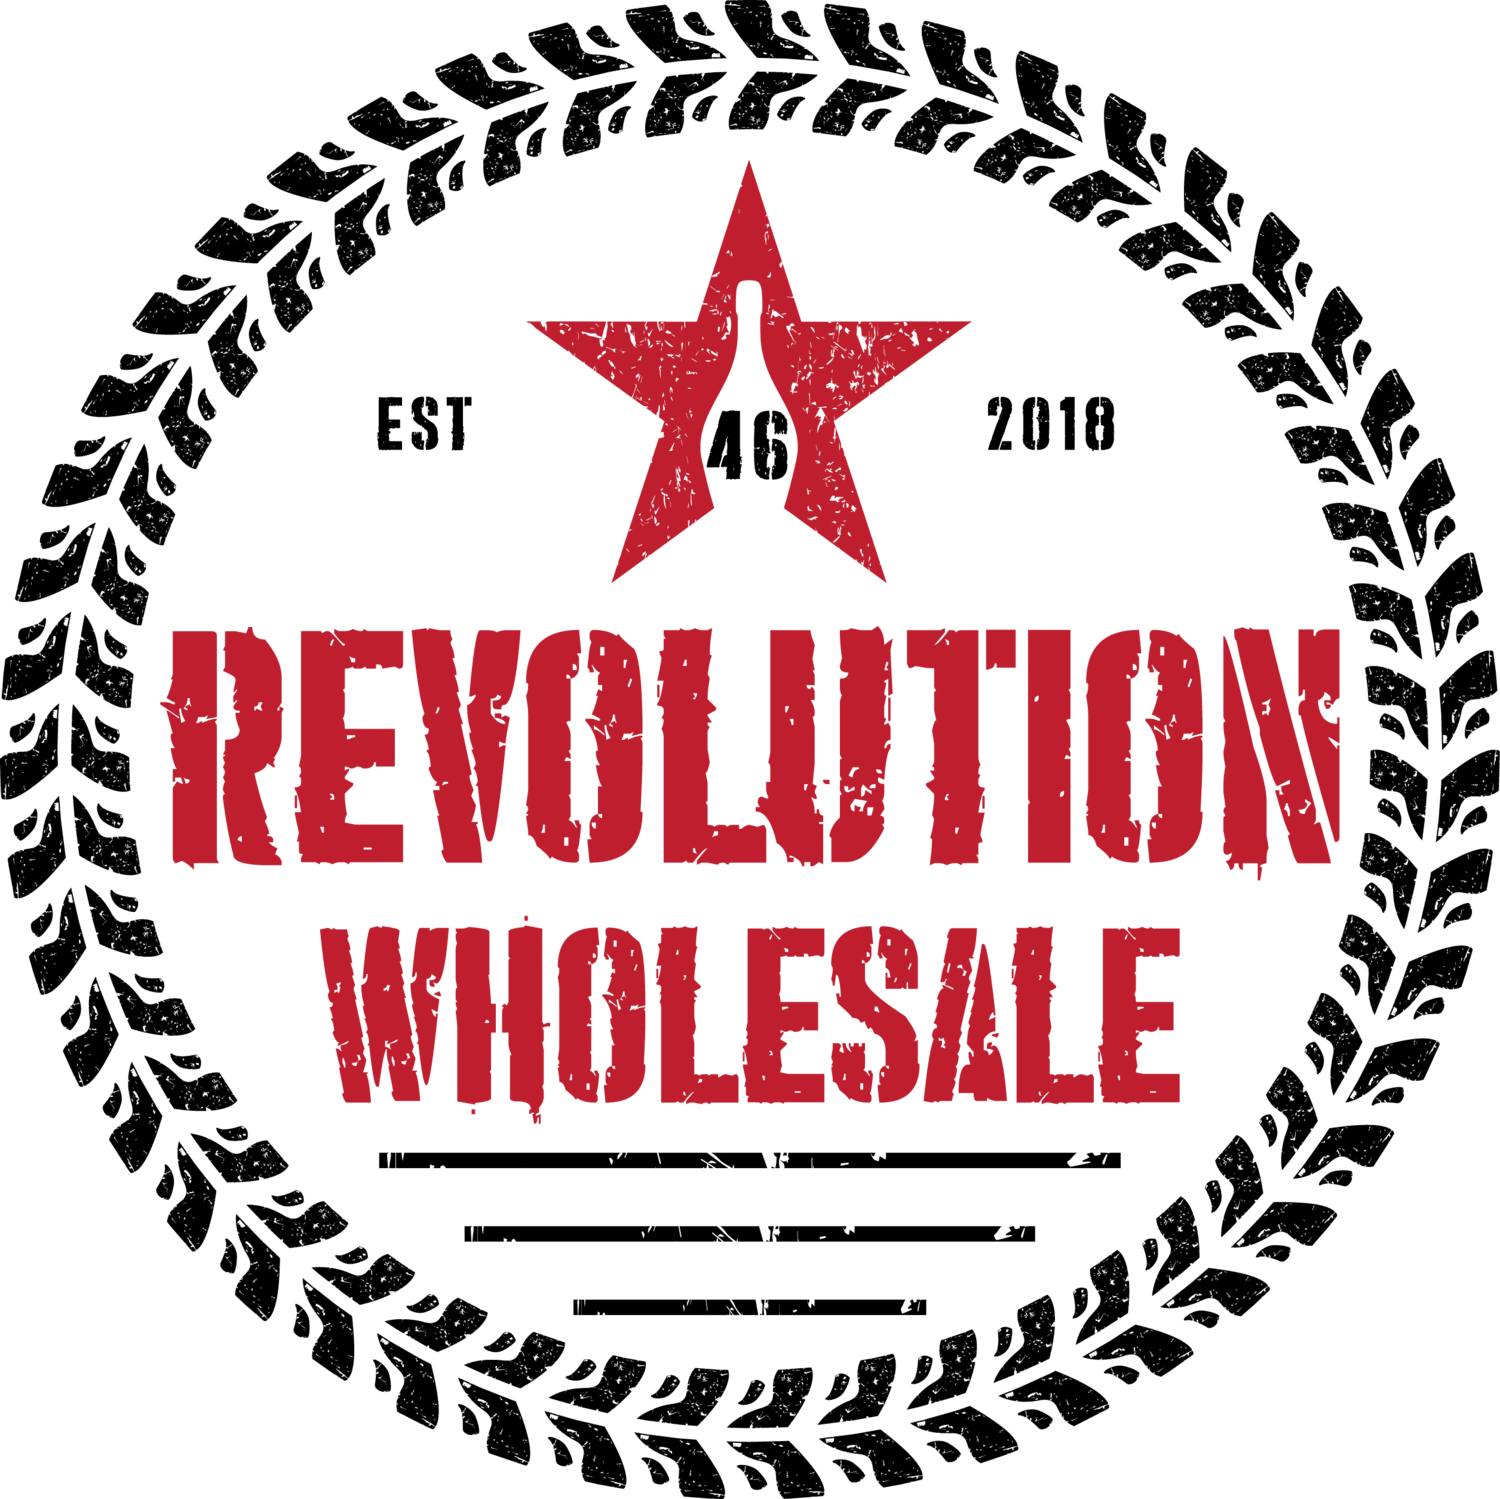 Revolution Wholesale